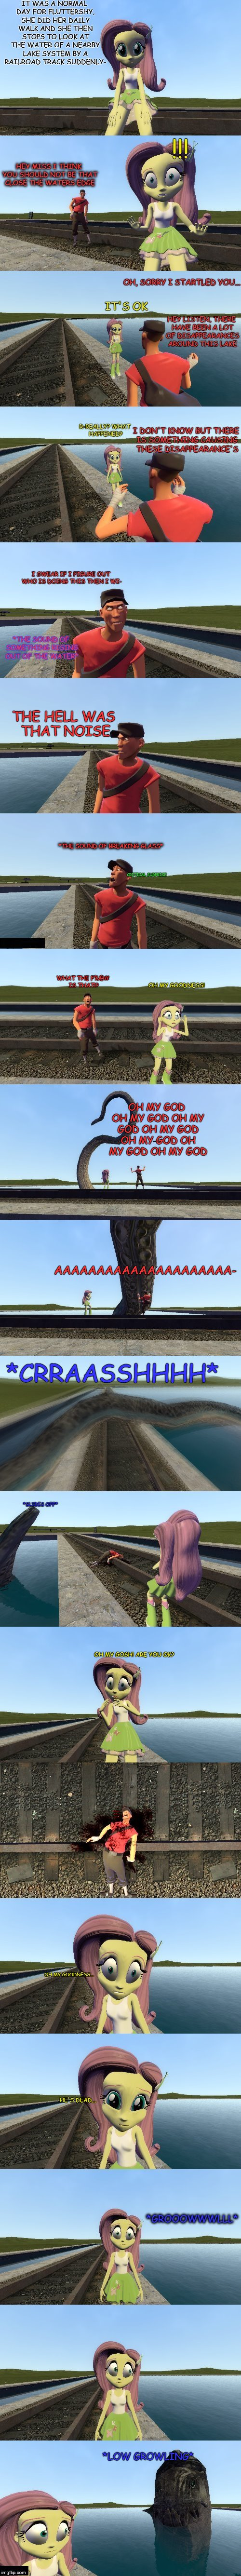 Monster of the lake | THE HELL WAS THAT NOISE *THE SOUND OF BREAKING GLASS* CRITICAL SURPRISE OH MY GOODNESS! WHAT THE F%@# IS THAT!? OH MY GOD OH MY GOD OH MY GO | image tagged in comic,nuff' said | made w/ Imgflip meme maker